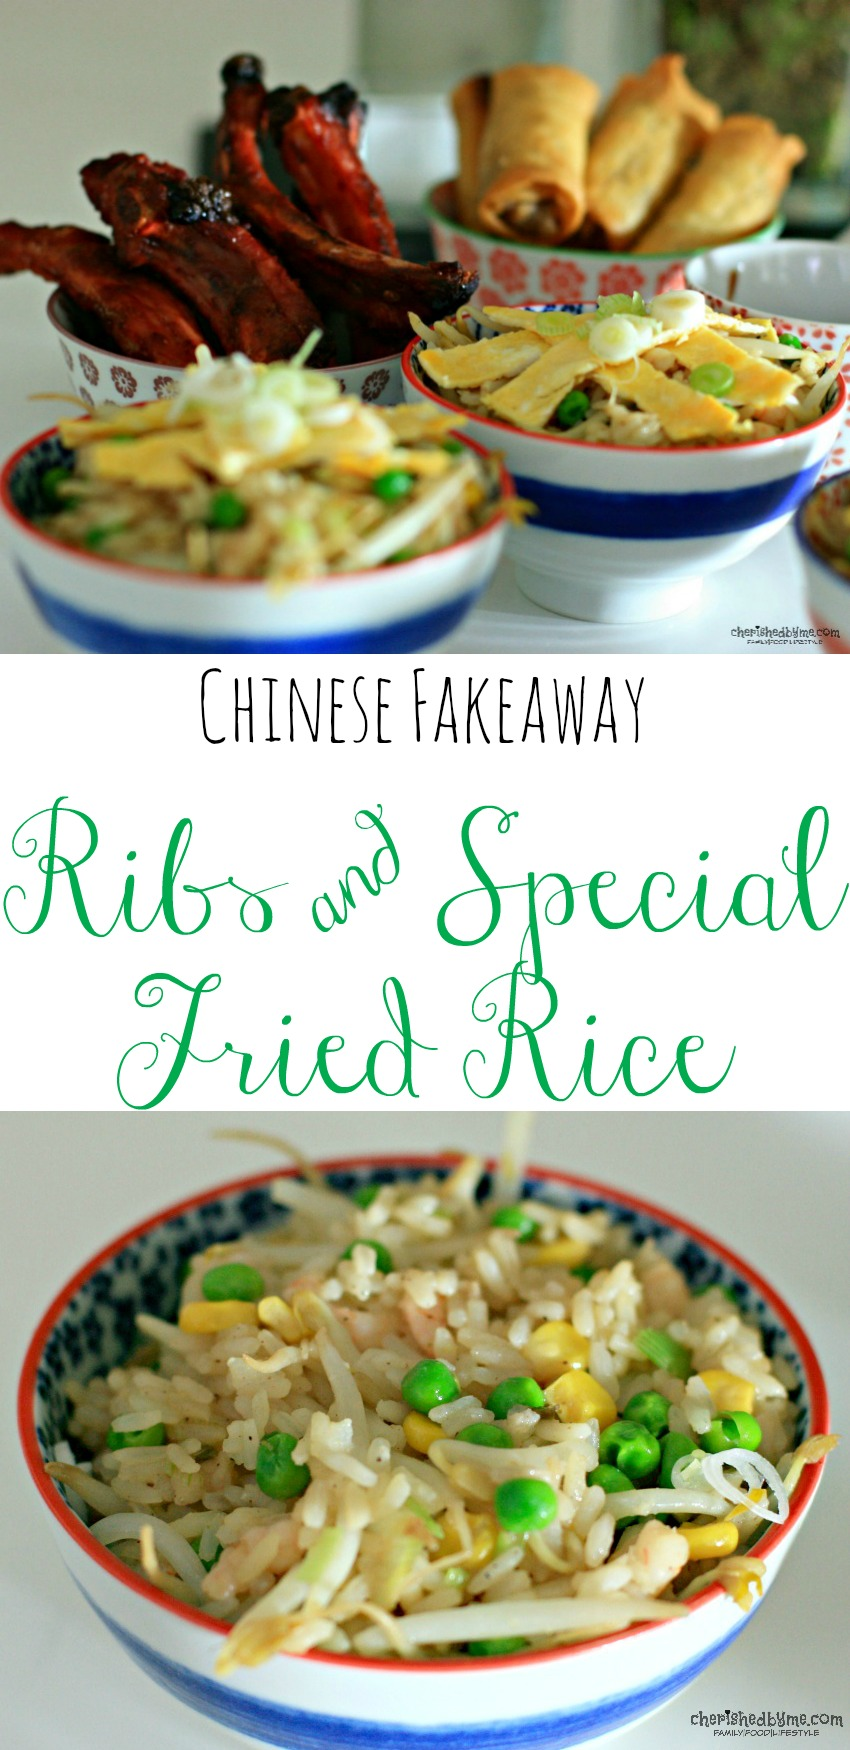 No need to order in make your own Chinese Fakeaway- ribs & special fried rice. Delicious, quick & easy to make cherishedbyme.com